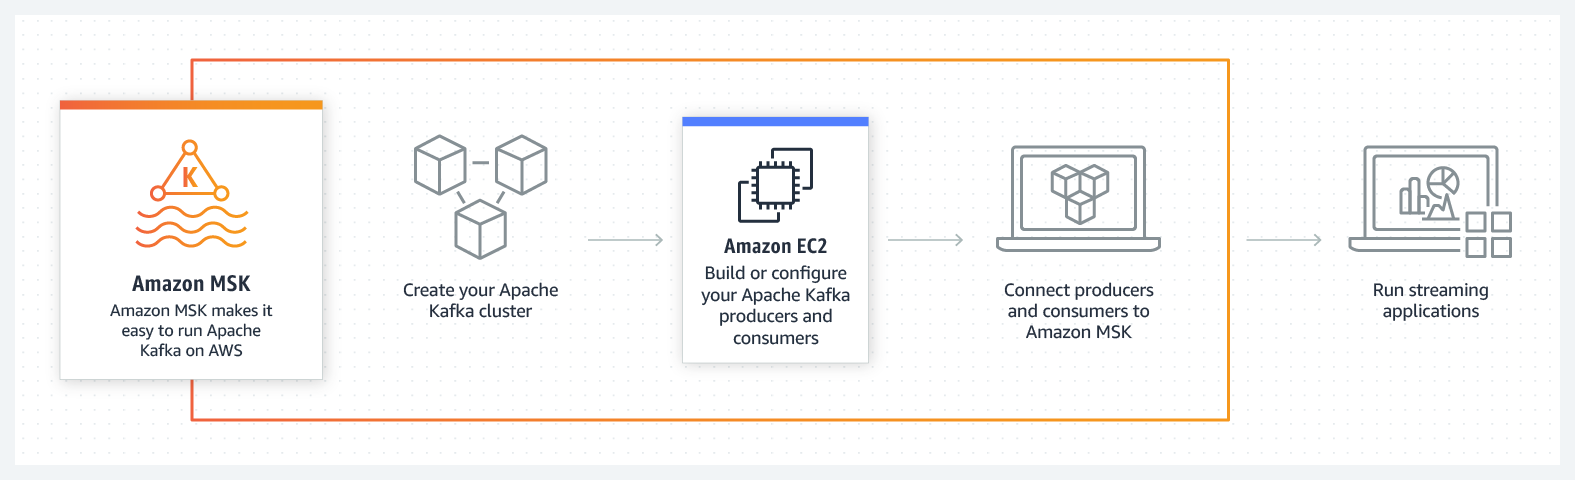 Amazon MSK - Amazon Web Services (AWS)